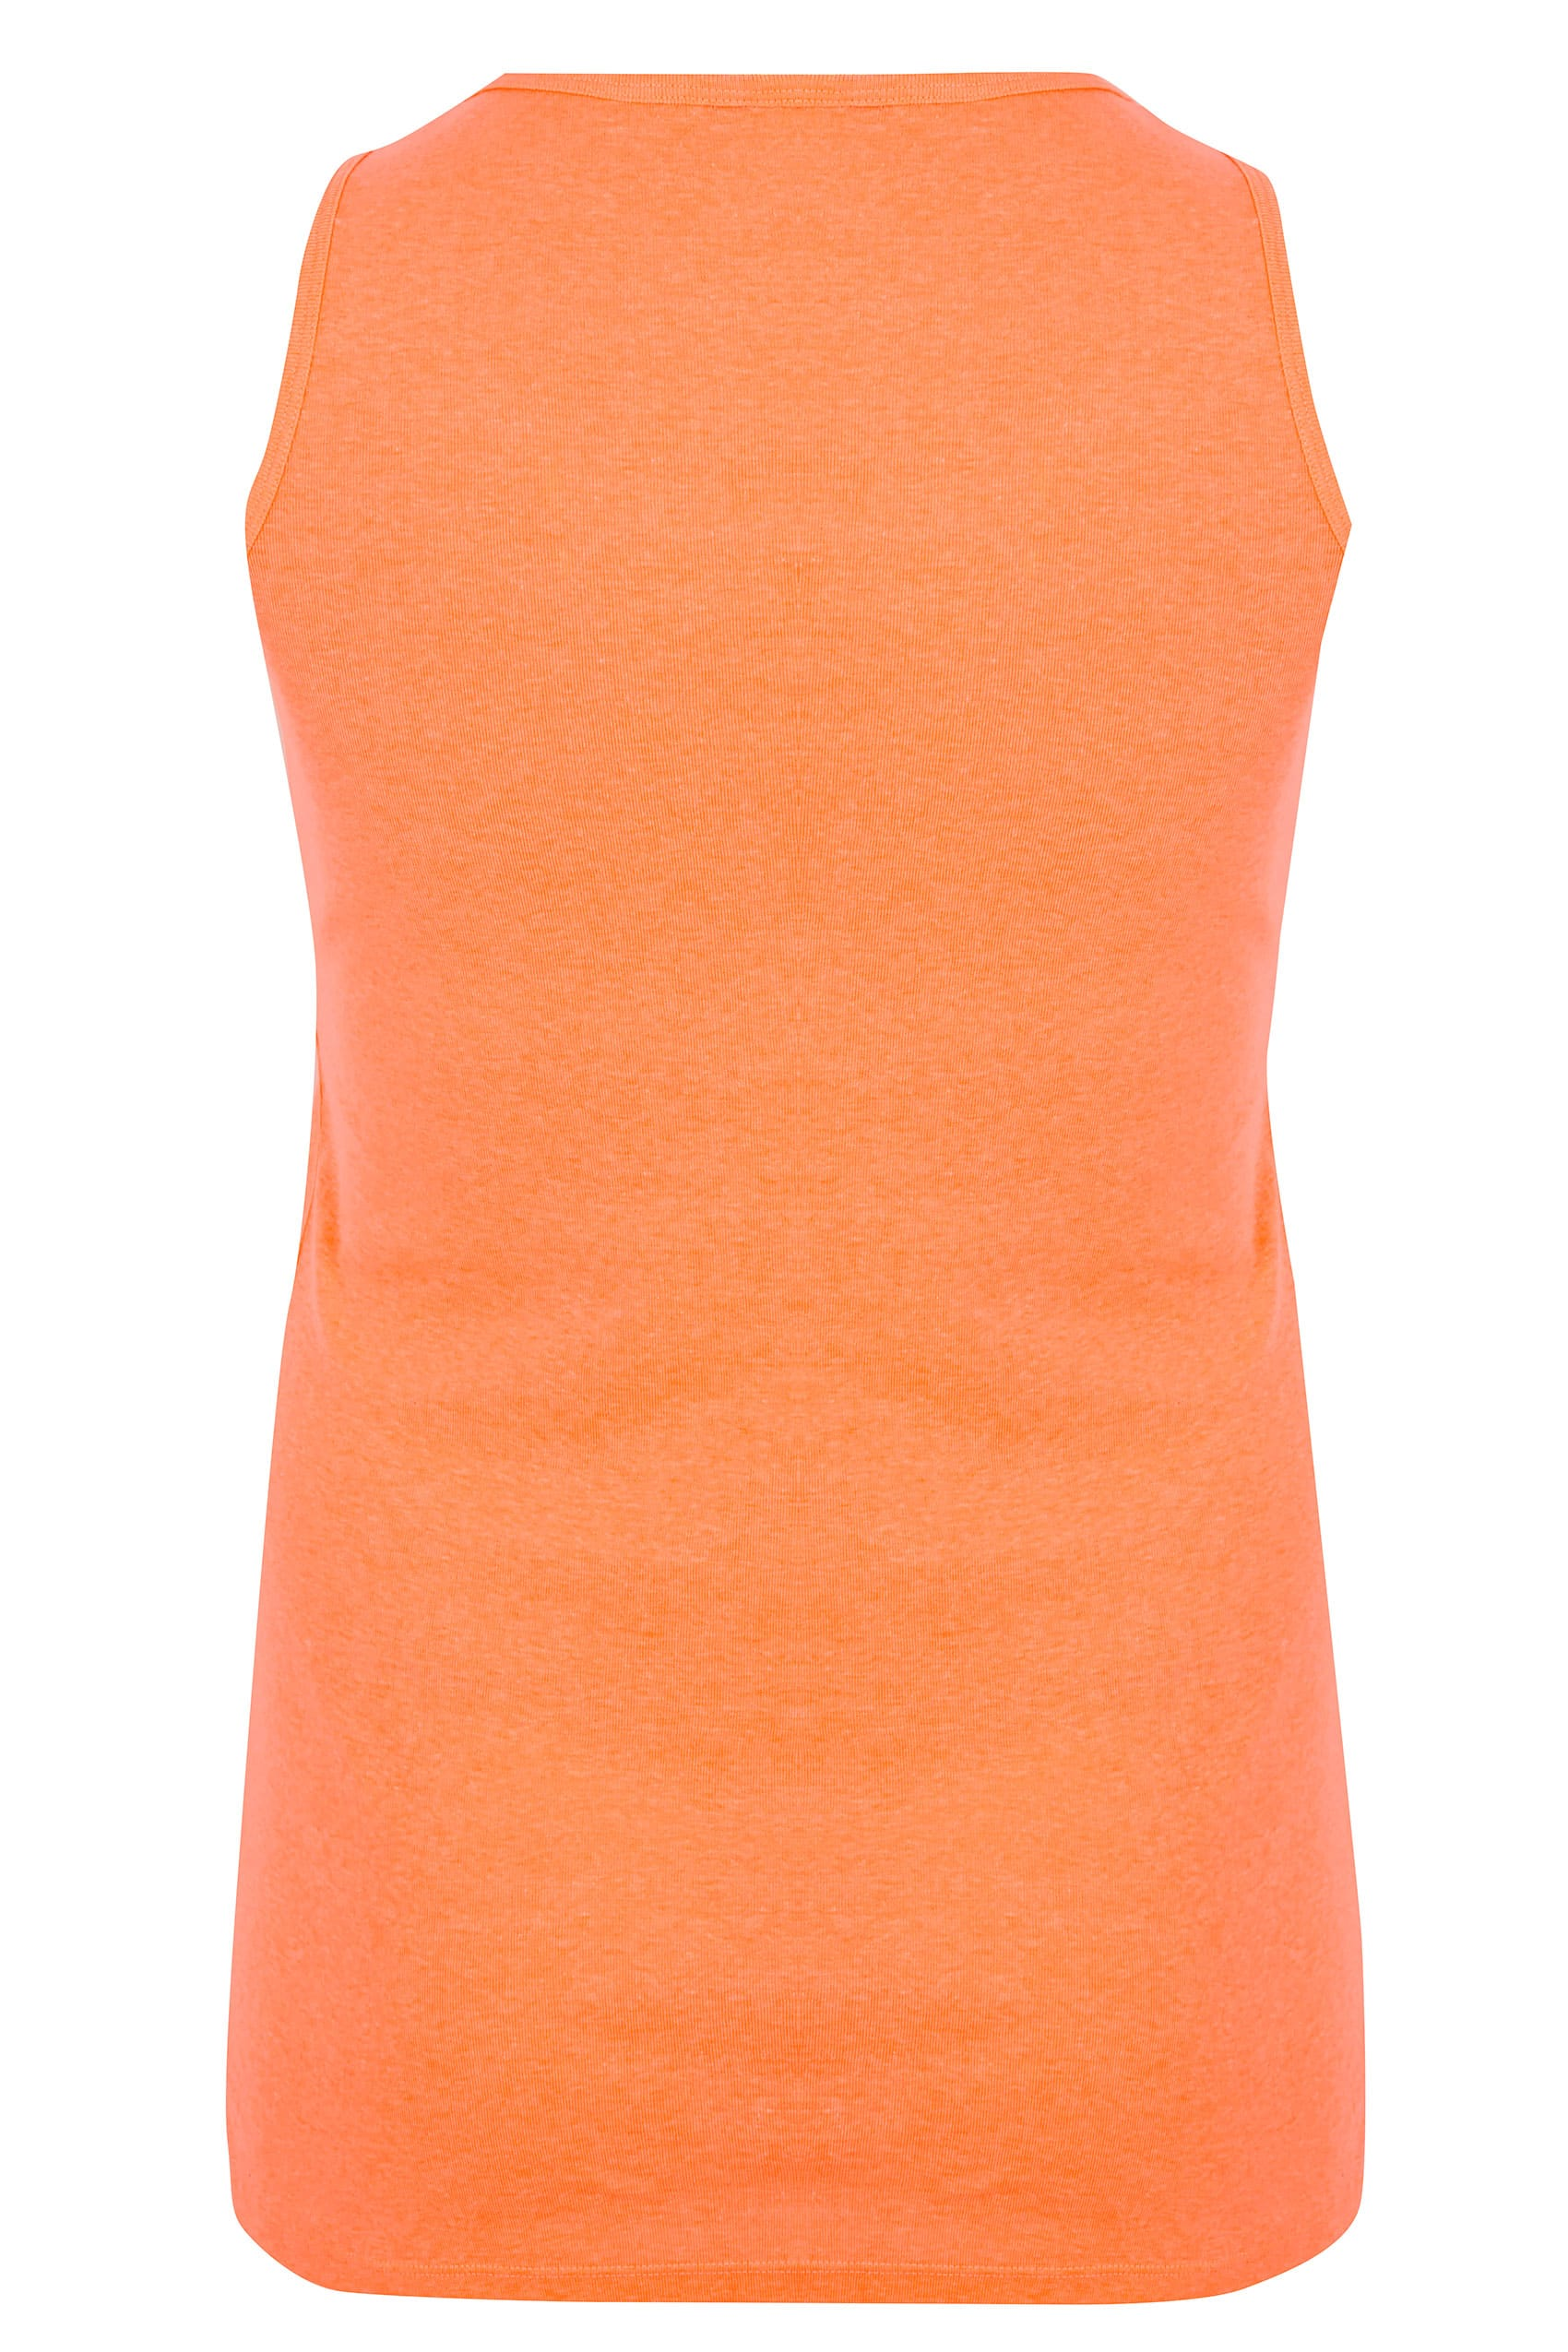 f2d7dd7c0 Neon Orange Vest Top